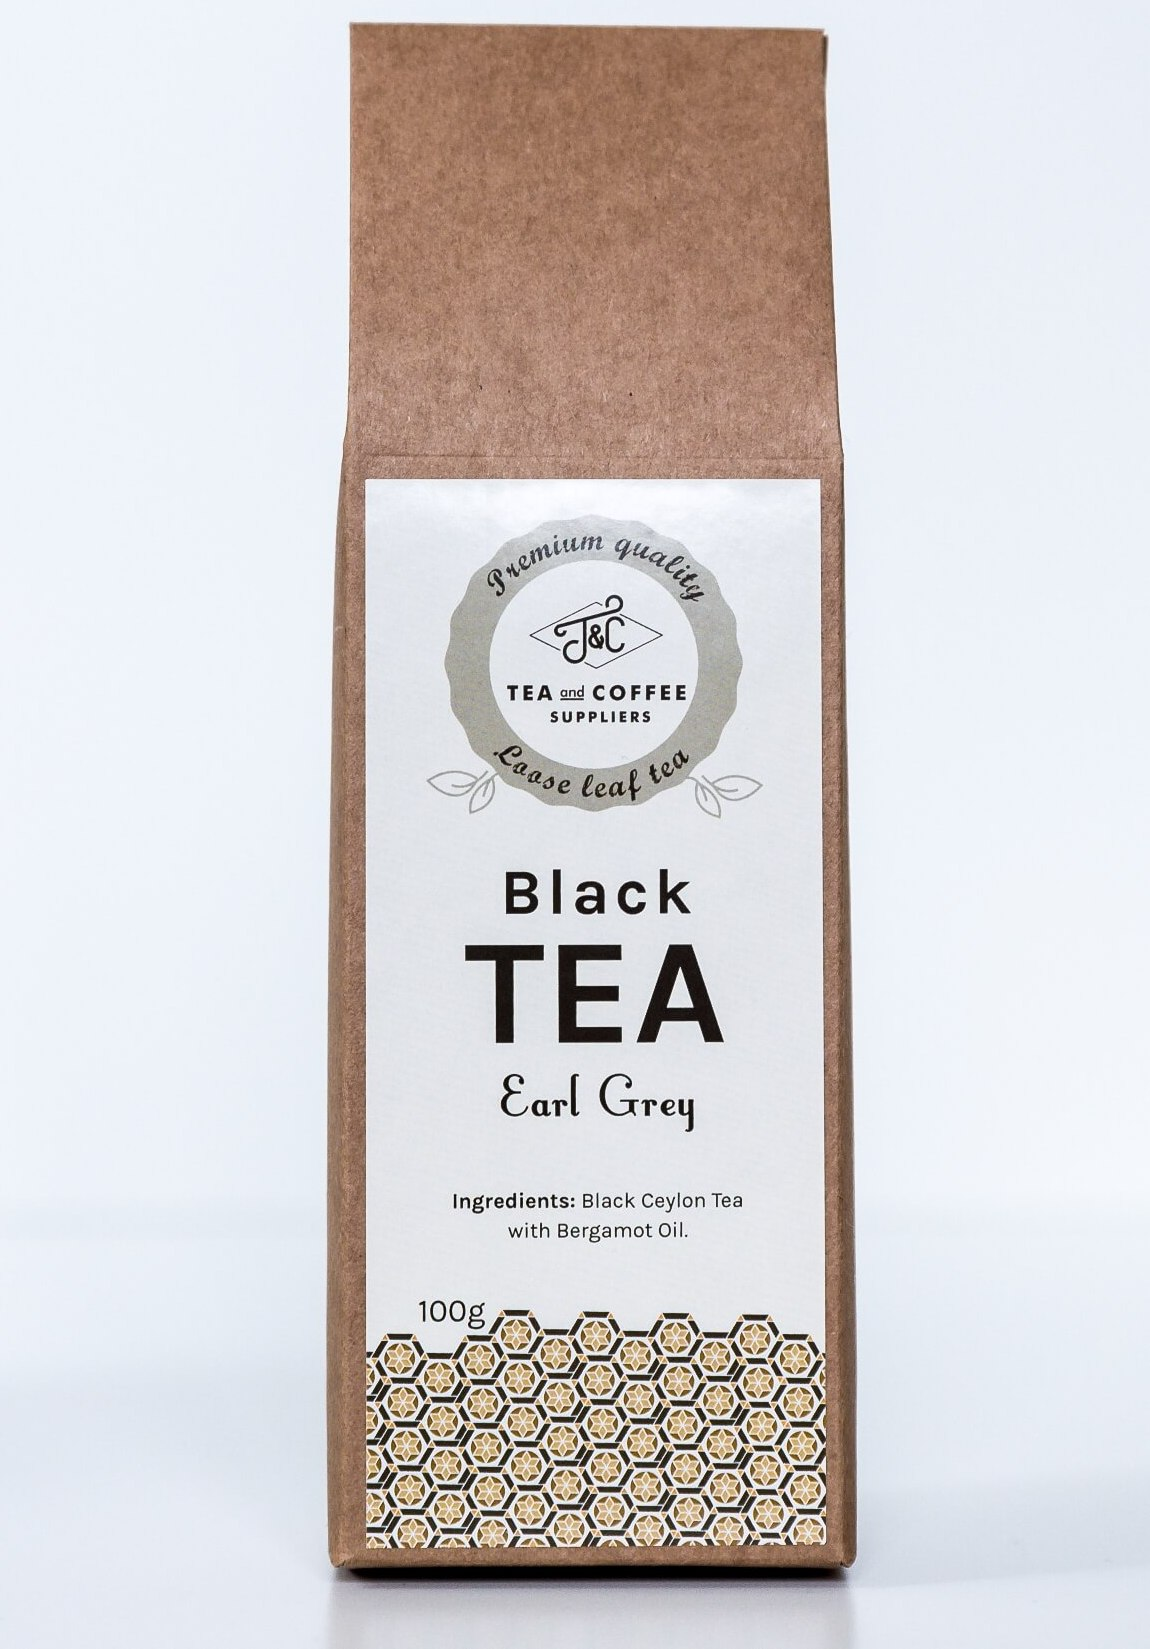 T&C Flavoured Black Tea 'Earl Grey'